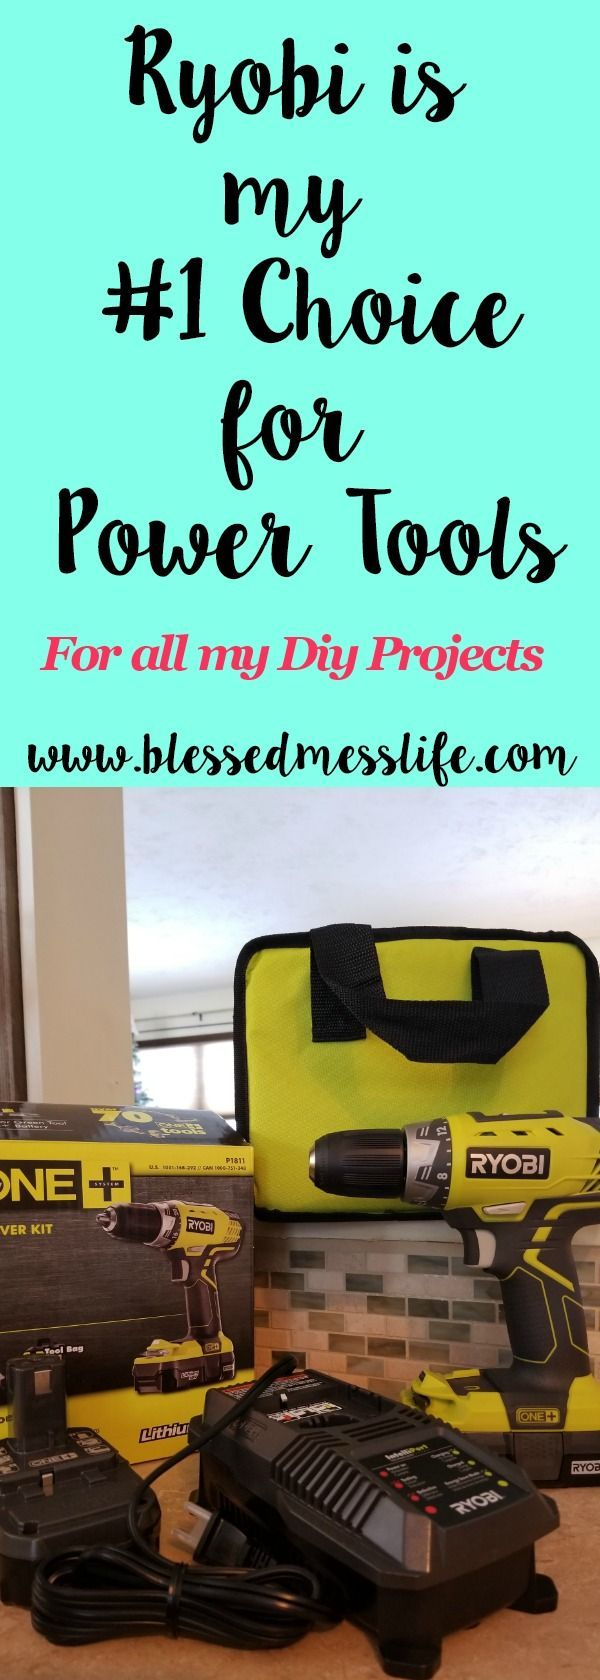 Best DIYer tools!  Here is why I choose ryobi tools for all of my diy projects! #diy #tools